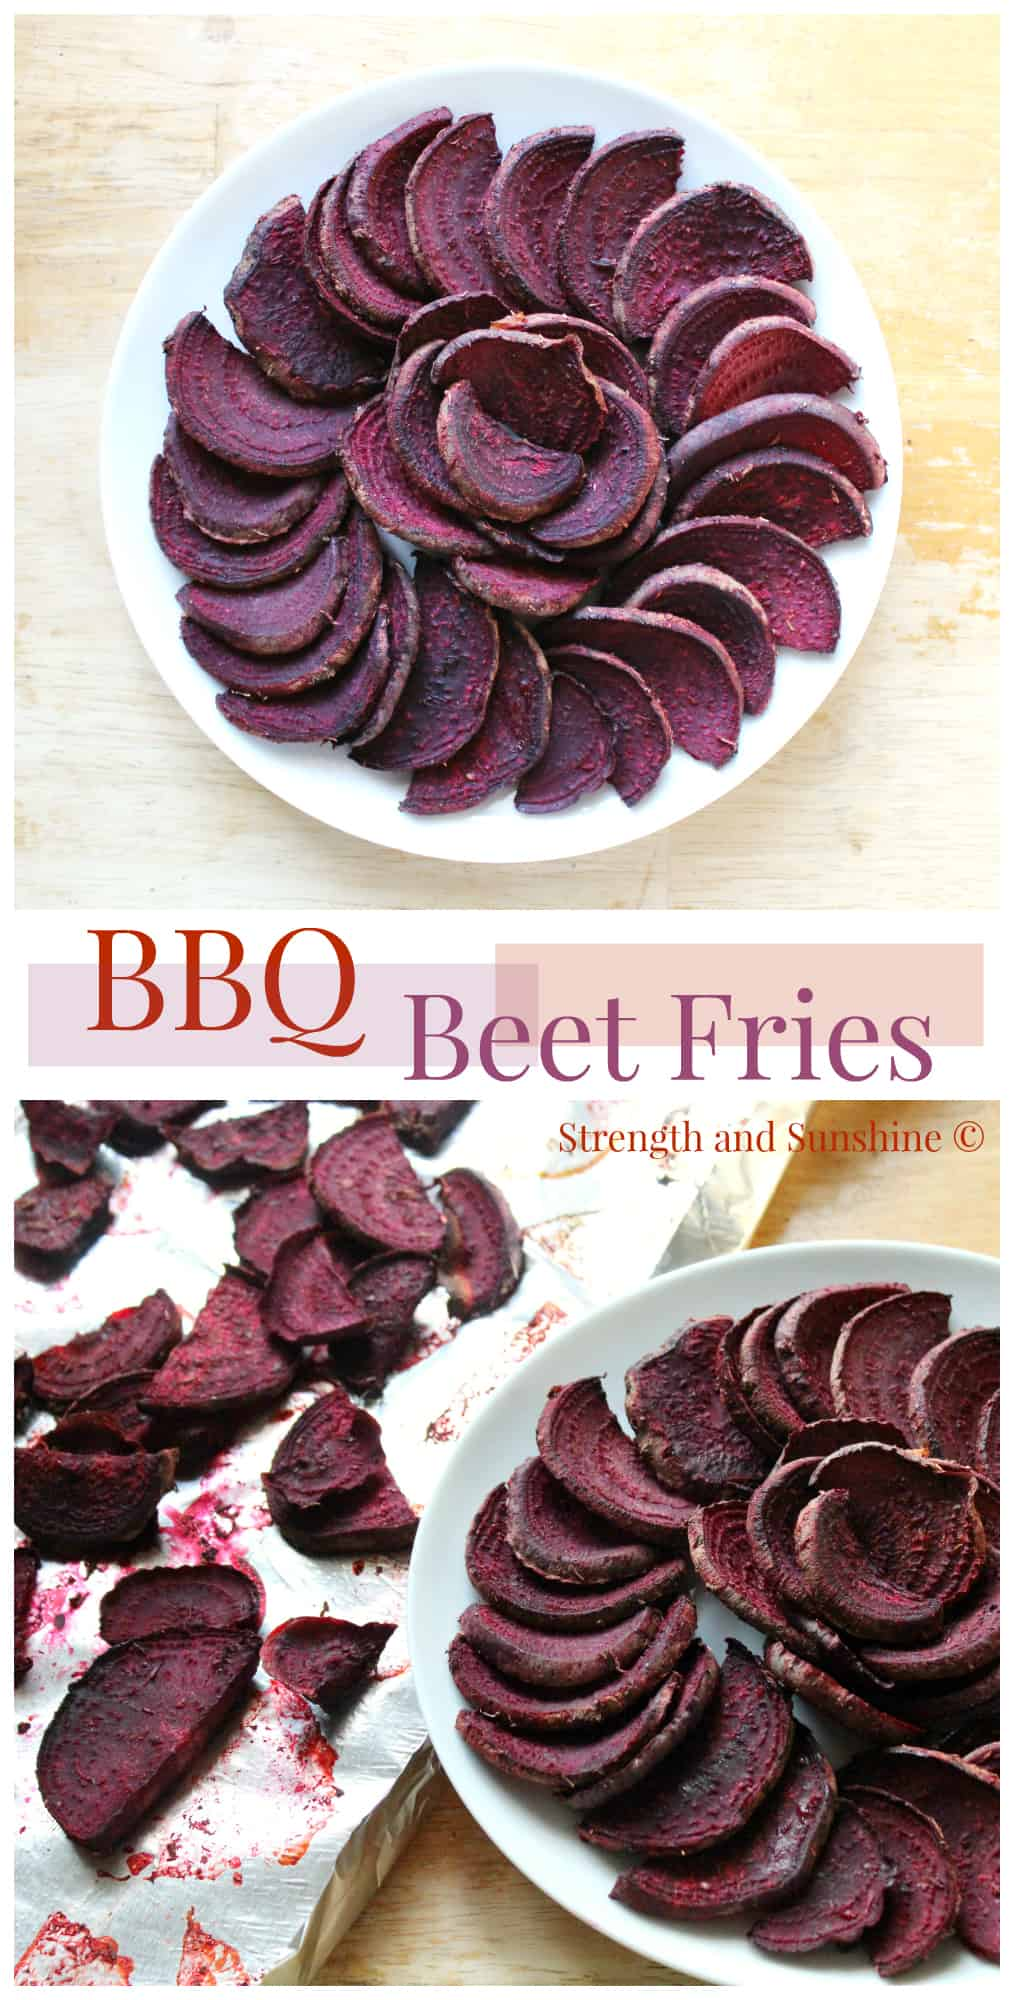 BBQ-Beet-Fries-PM